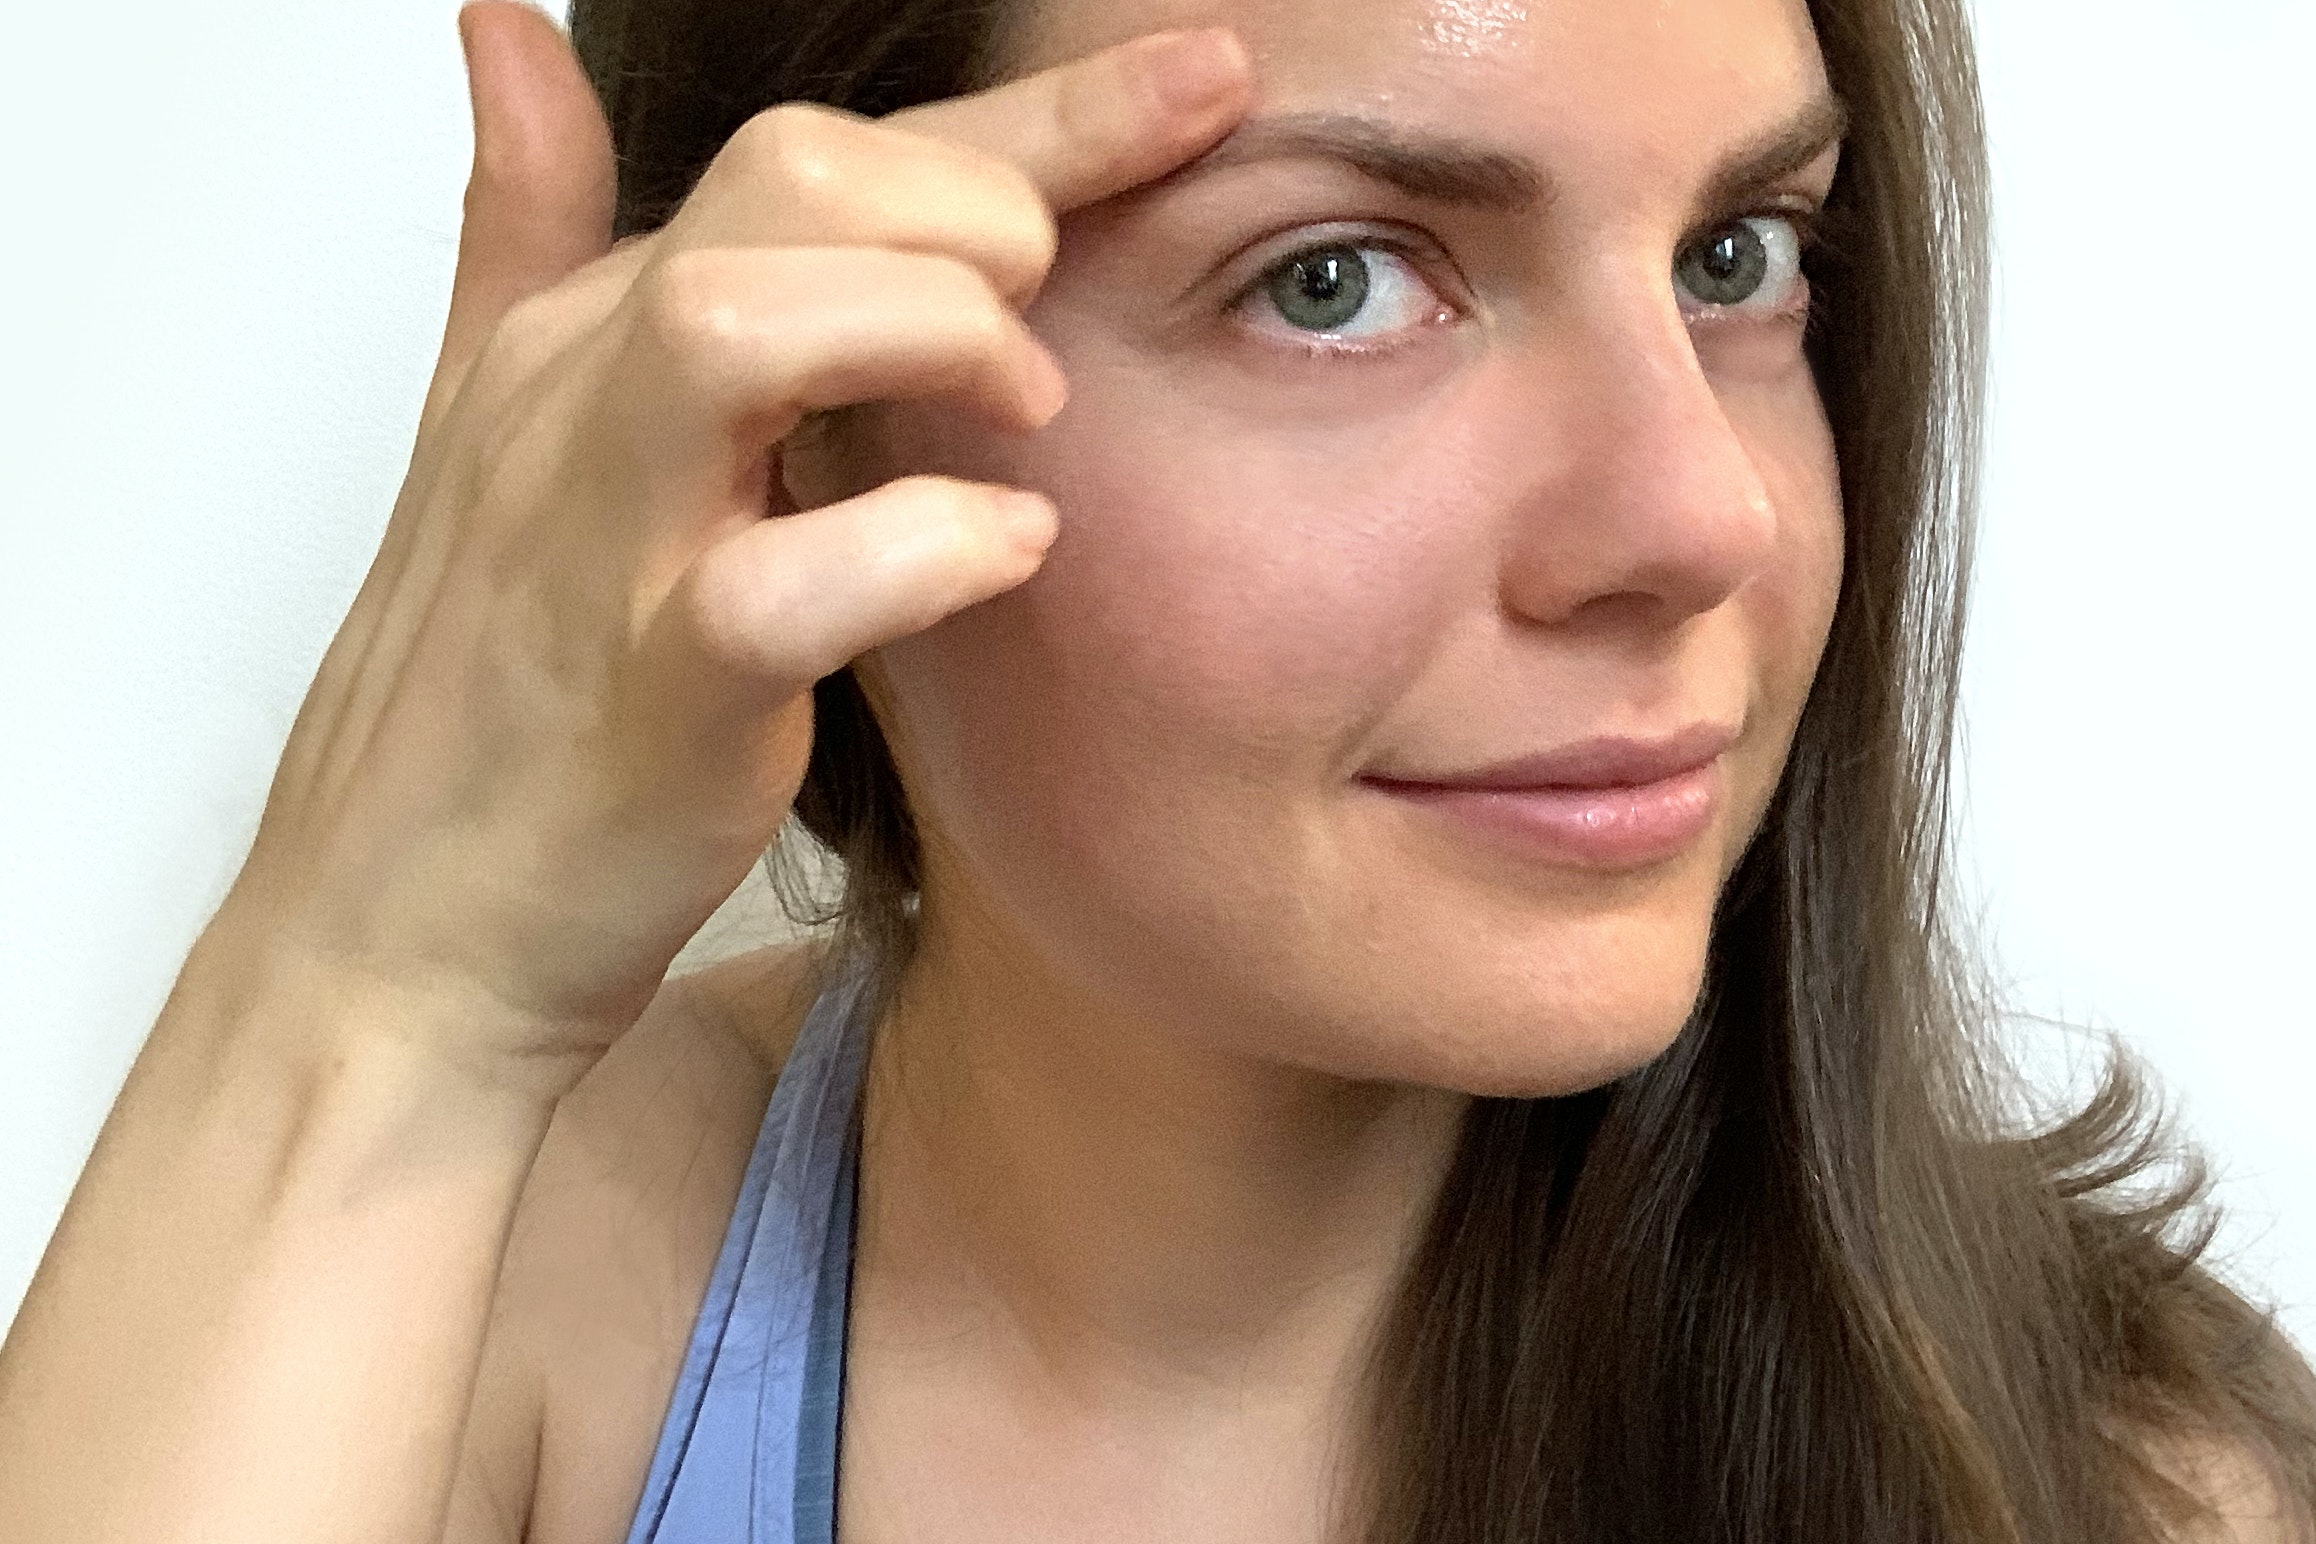 How Using SkinMedica Products for 30 Days Changed My Skincare Routine For the Better